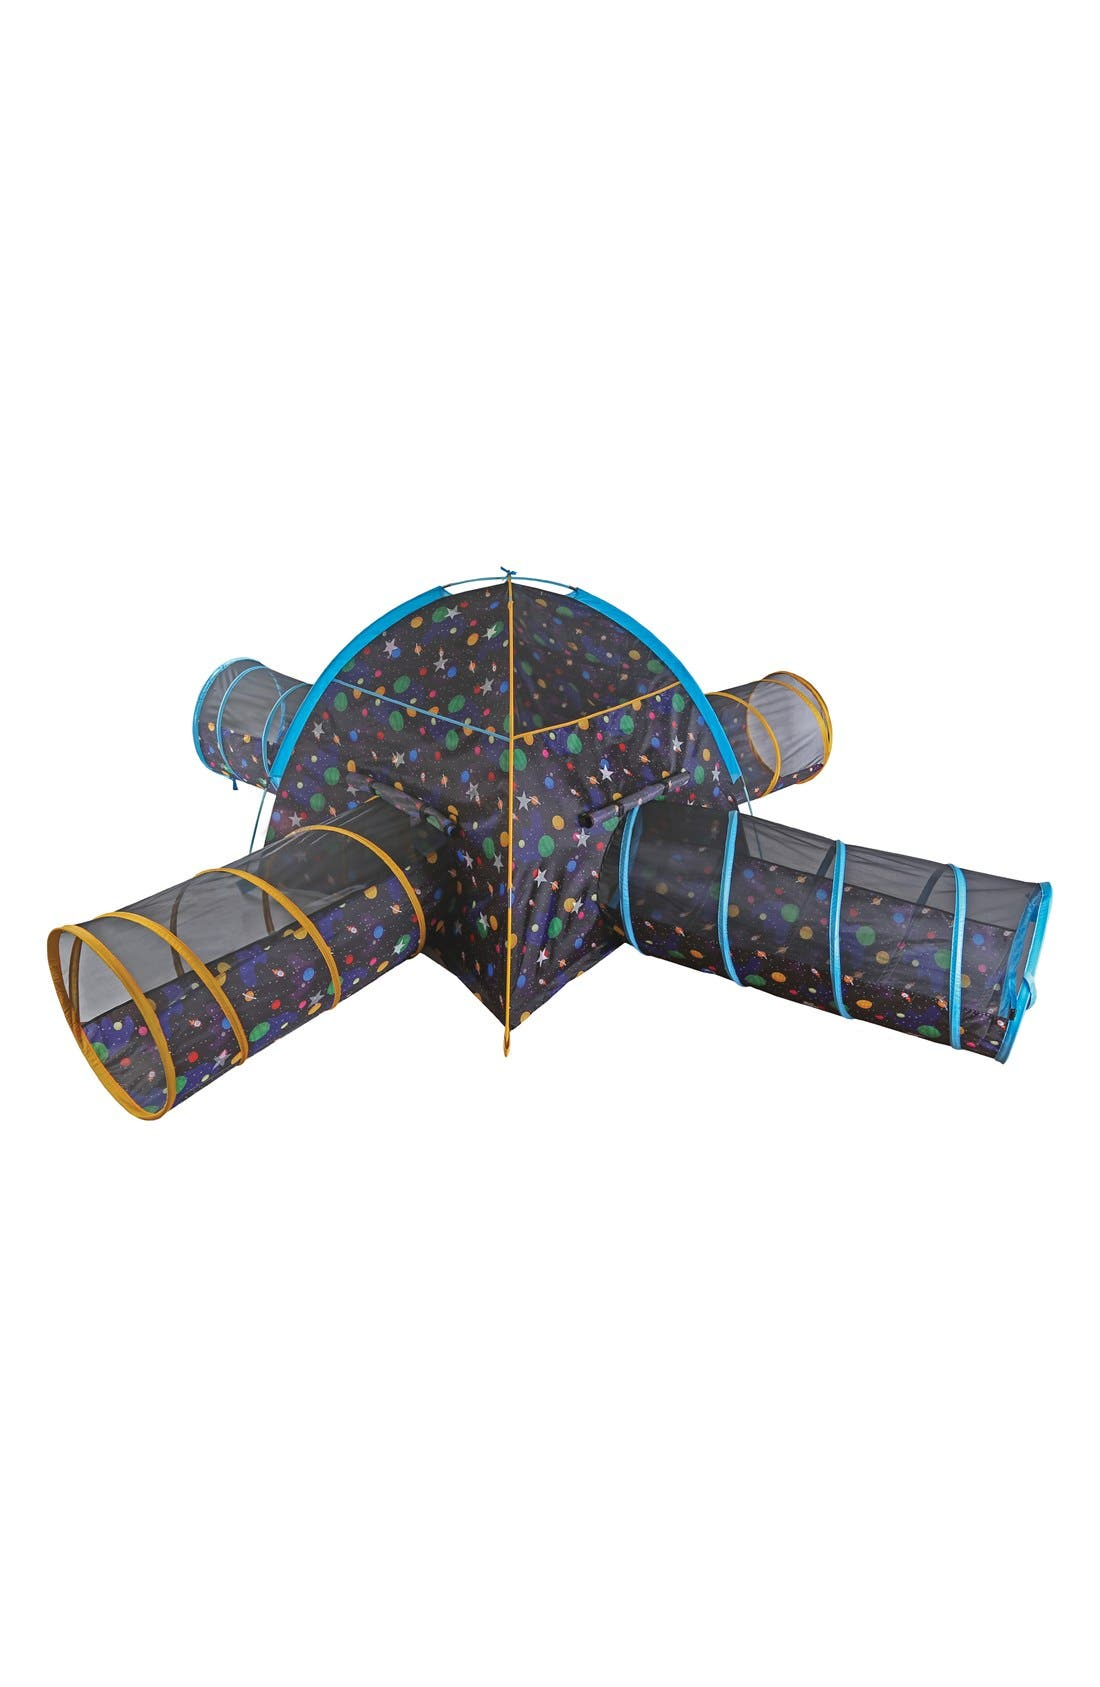 Main Image - Pacific Play Tents 'Galaxy Junction' Dome Tent with Connecting Tunnels